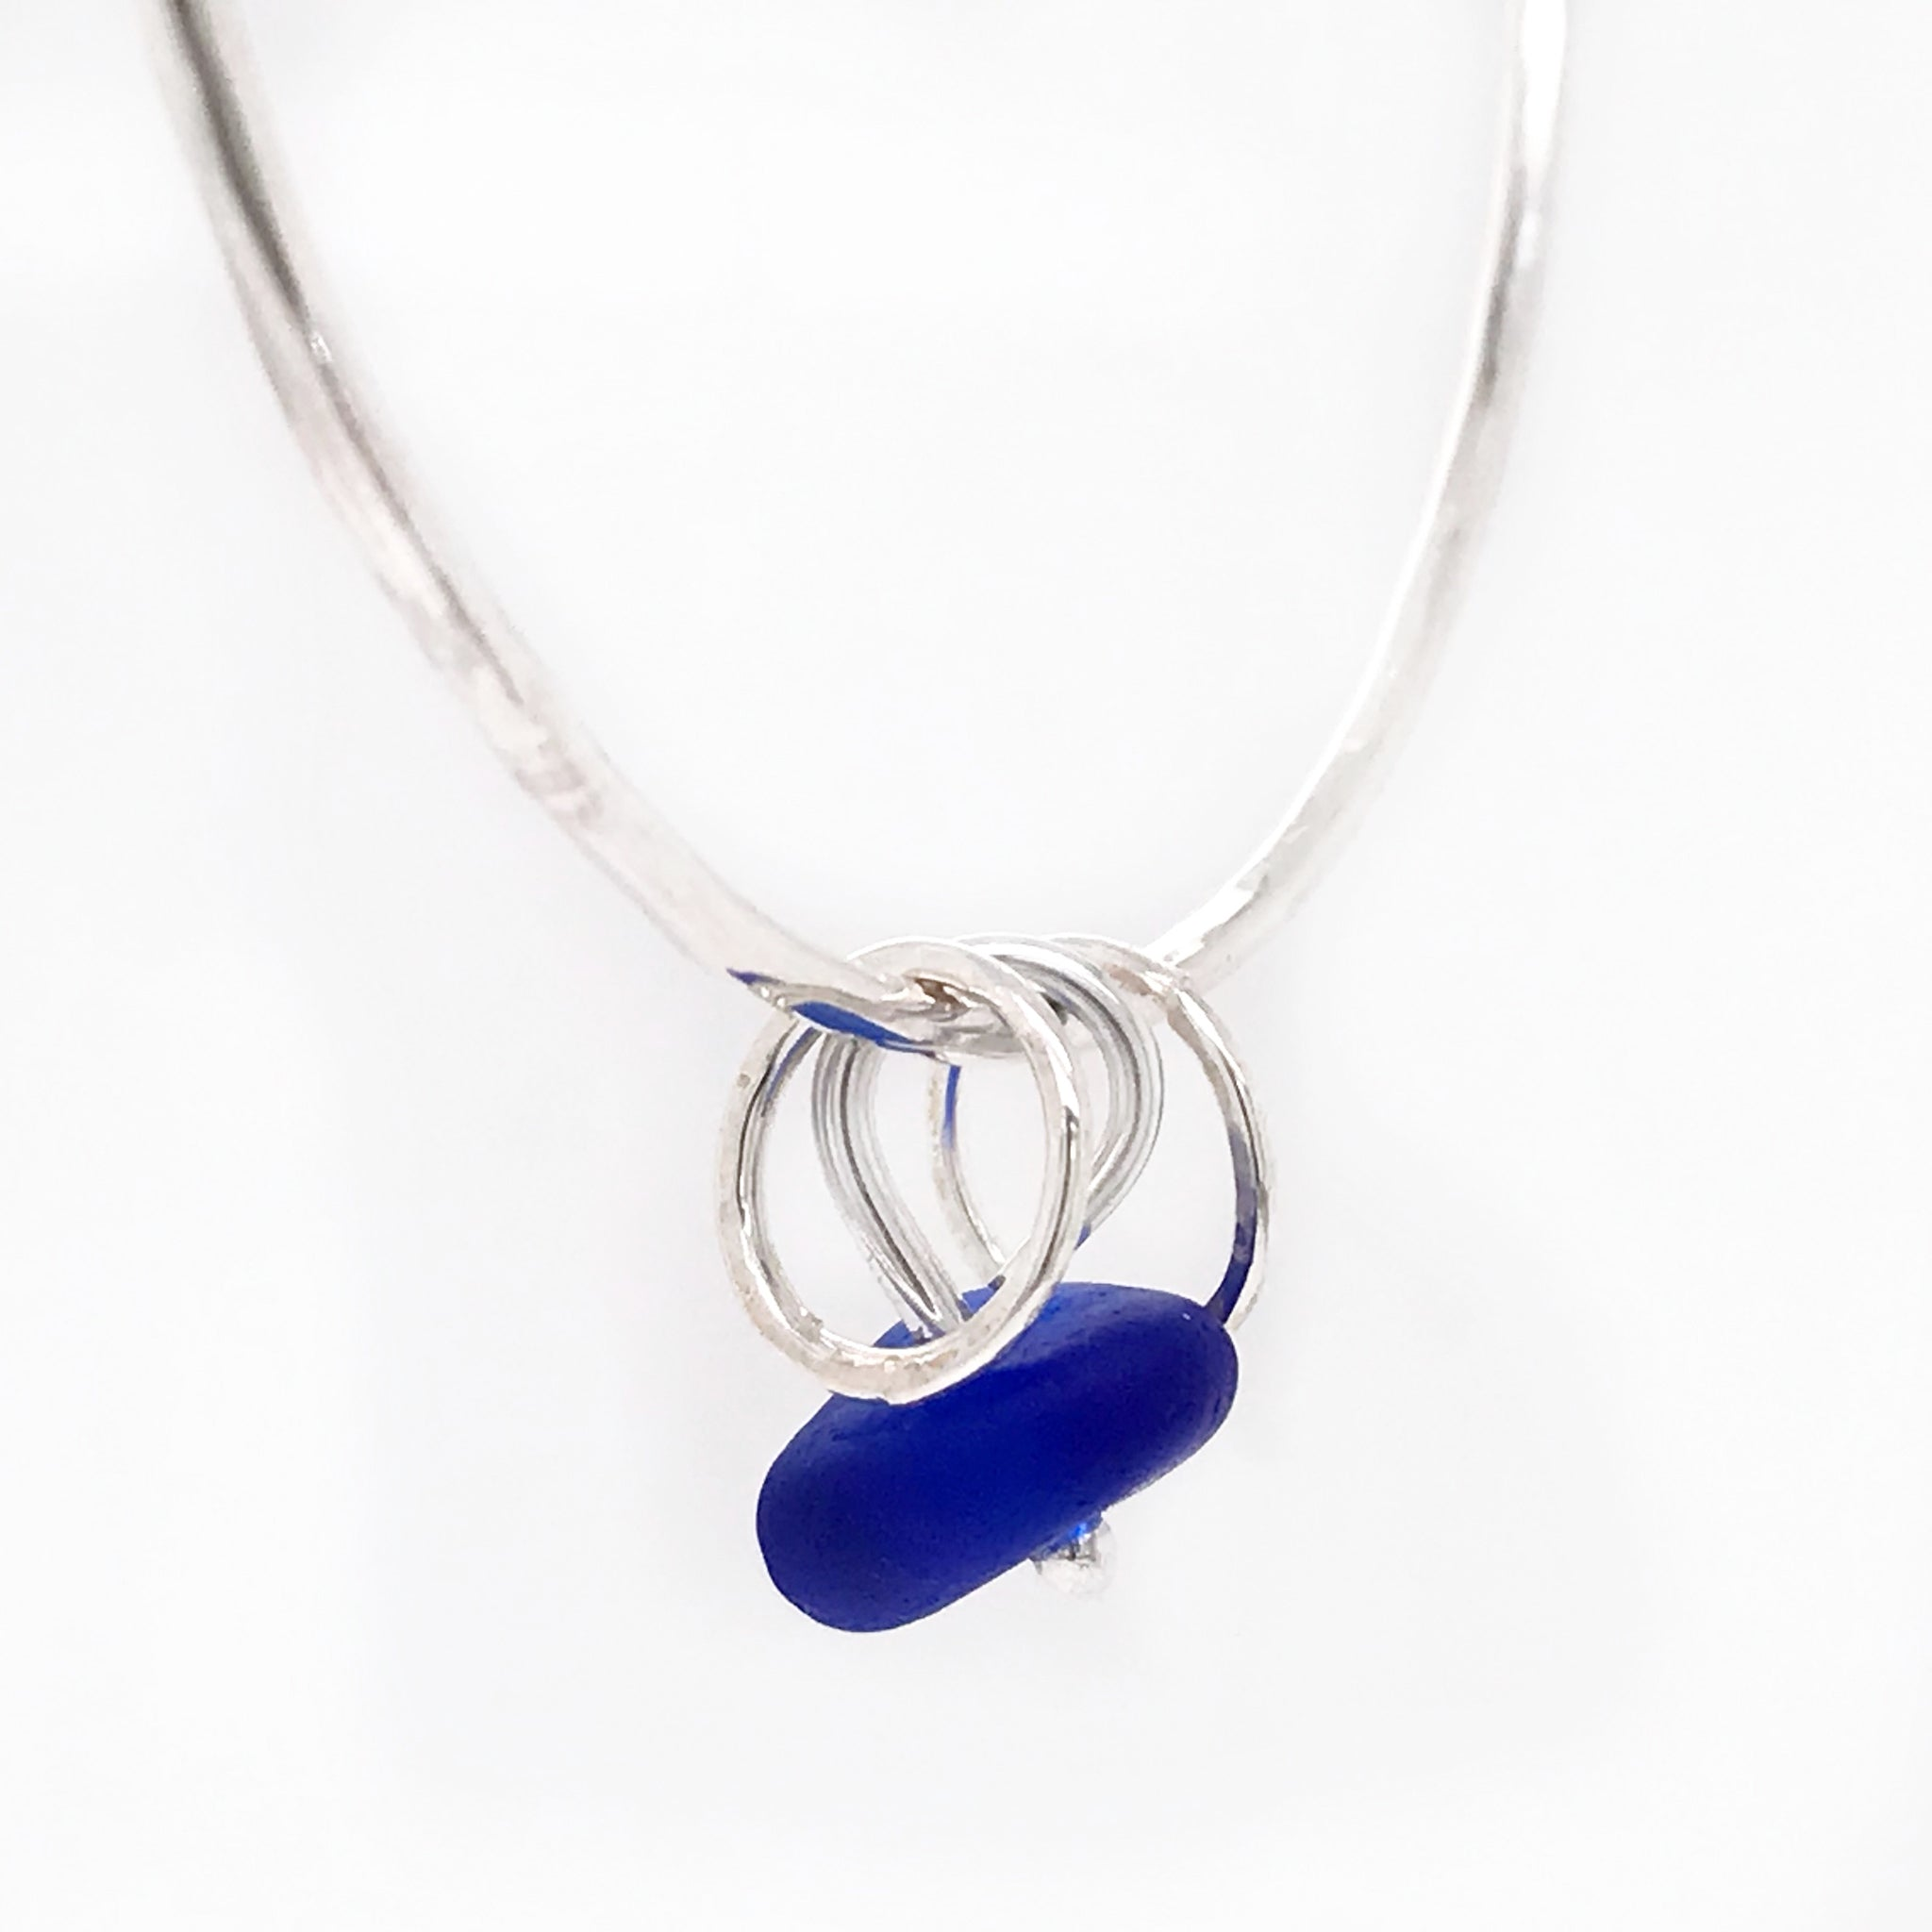 Cobalt Blue Seaglass Bangle - Sterling Silver – kriket-broadhurst jewellery